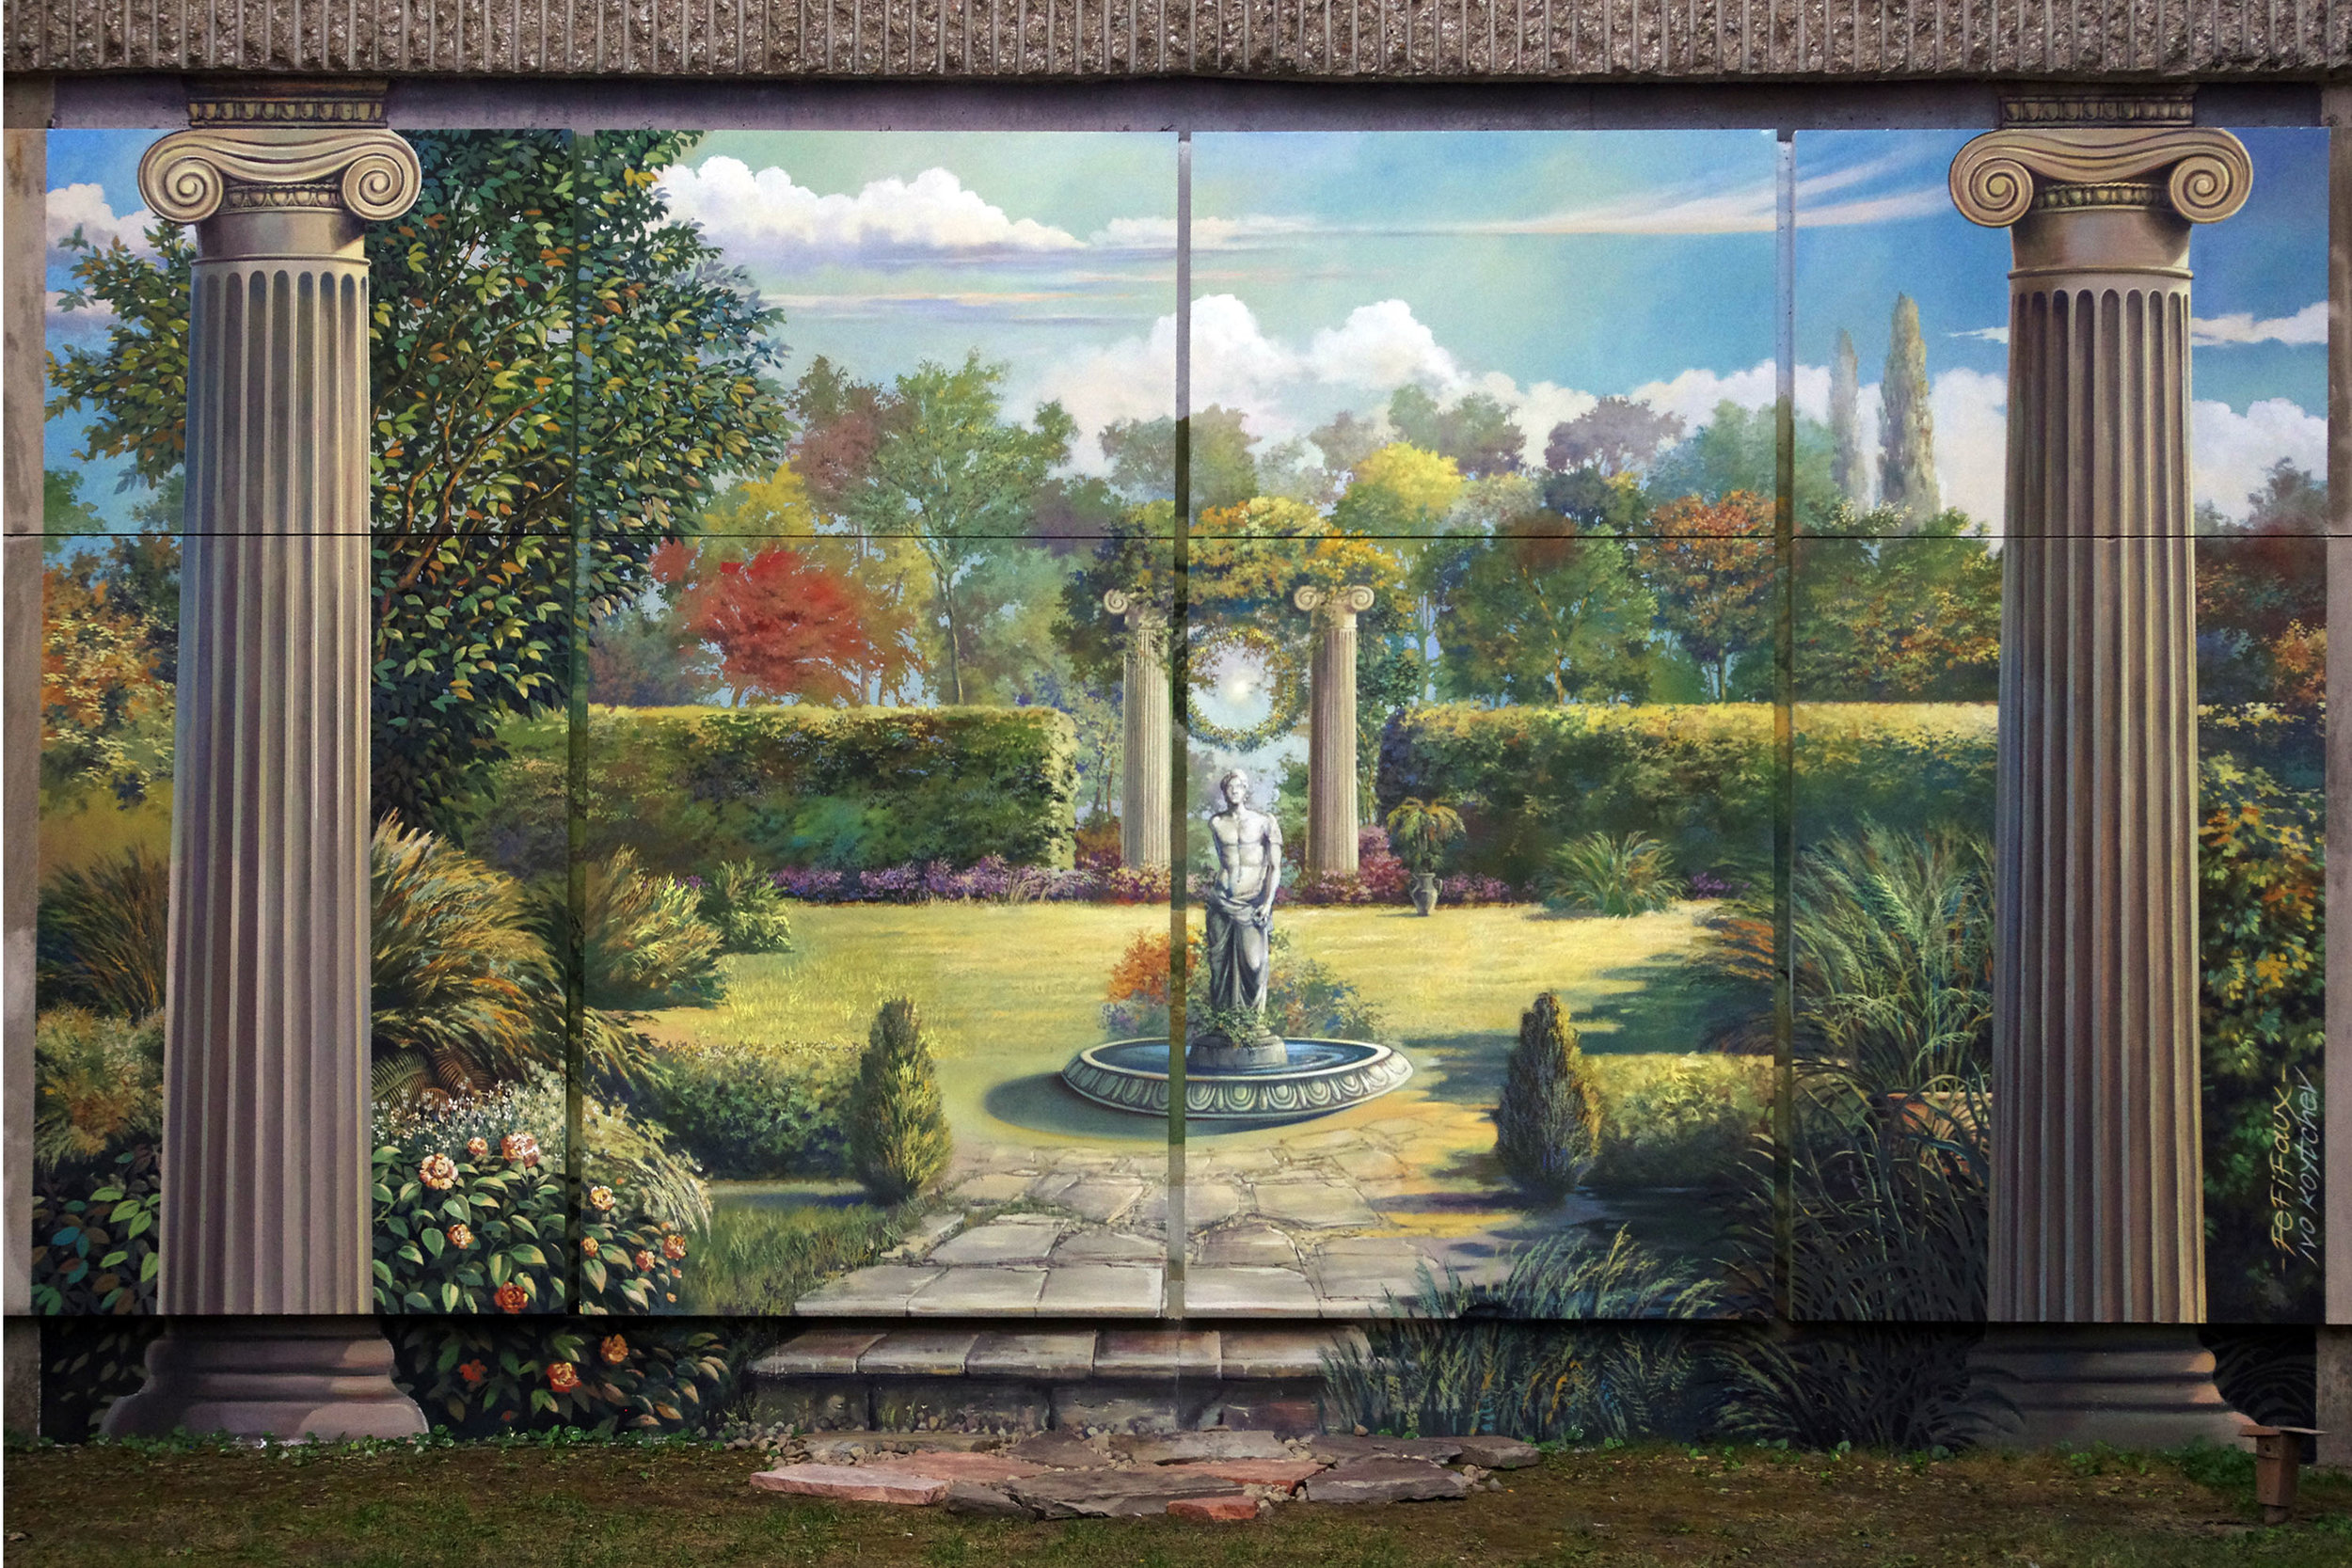 The finished mural has numerous Masonic references included for the viewer to discover.